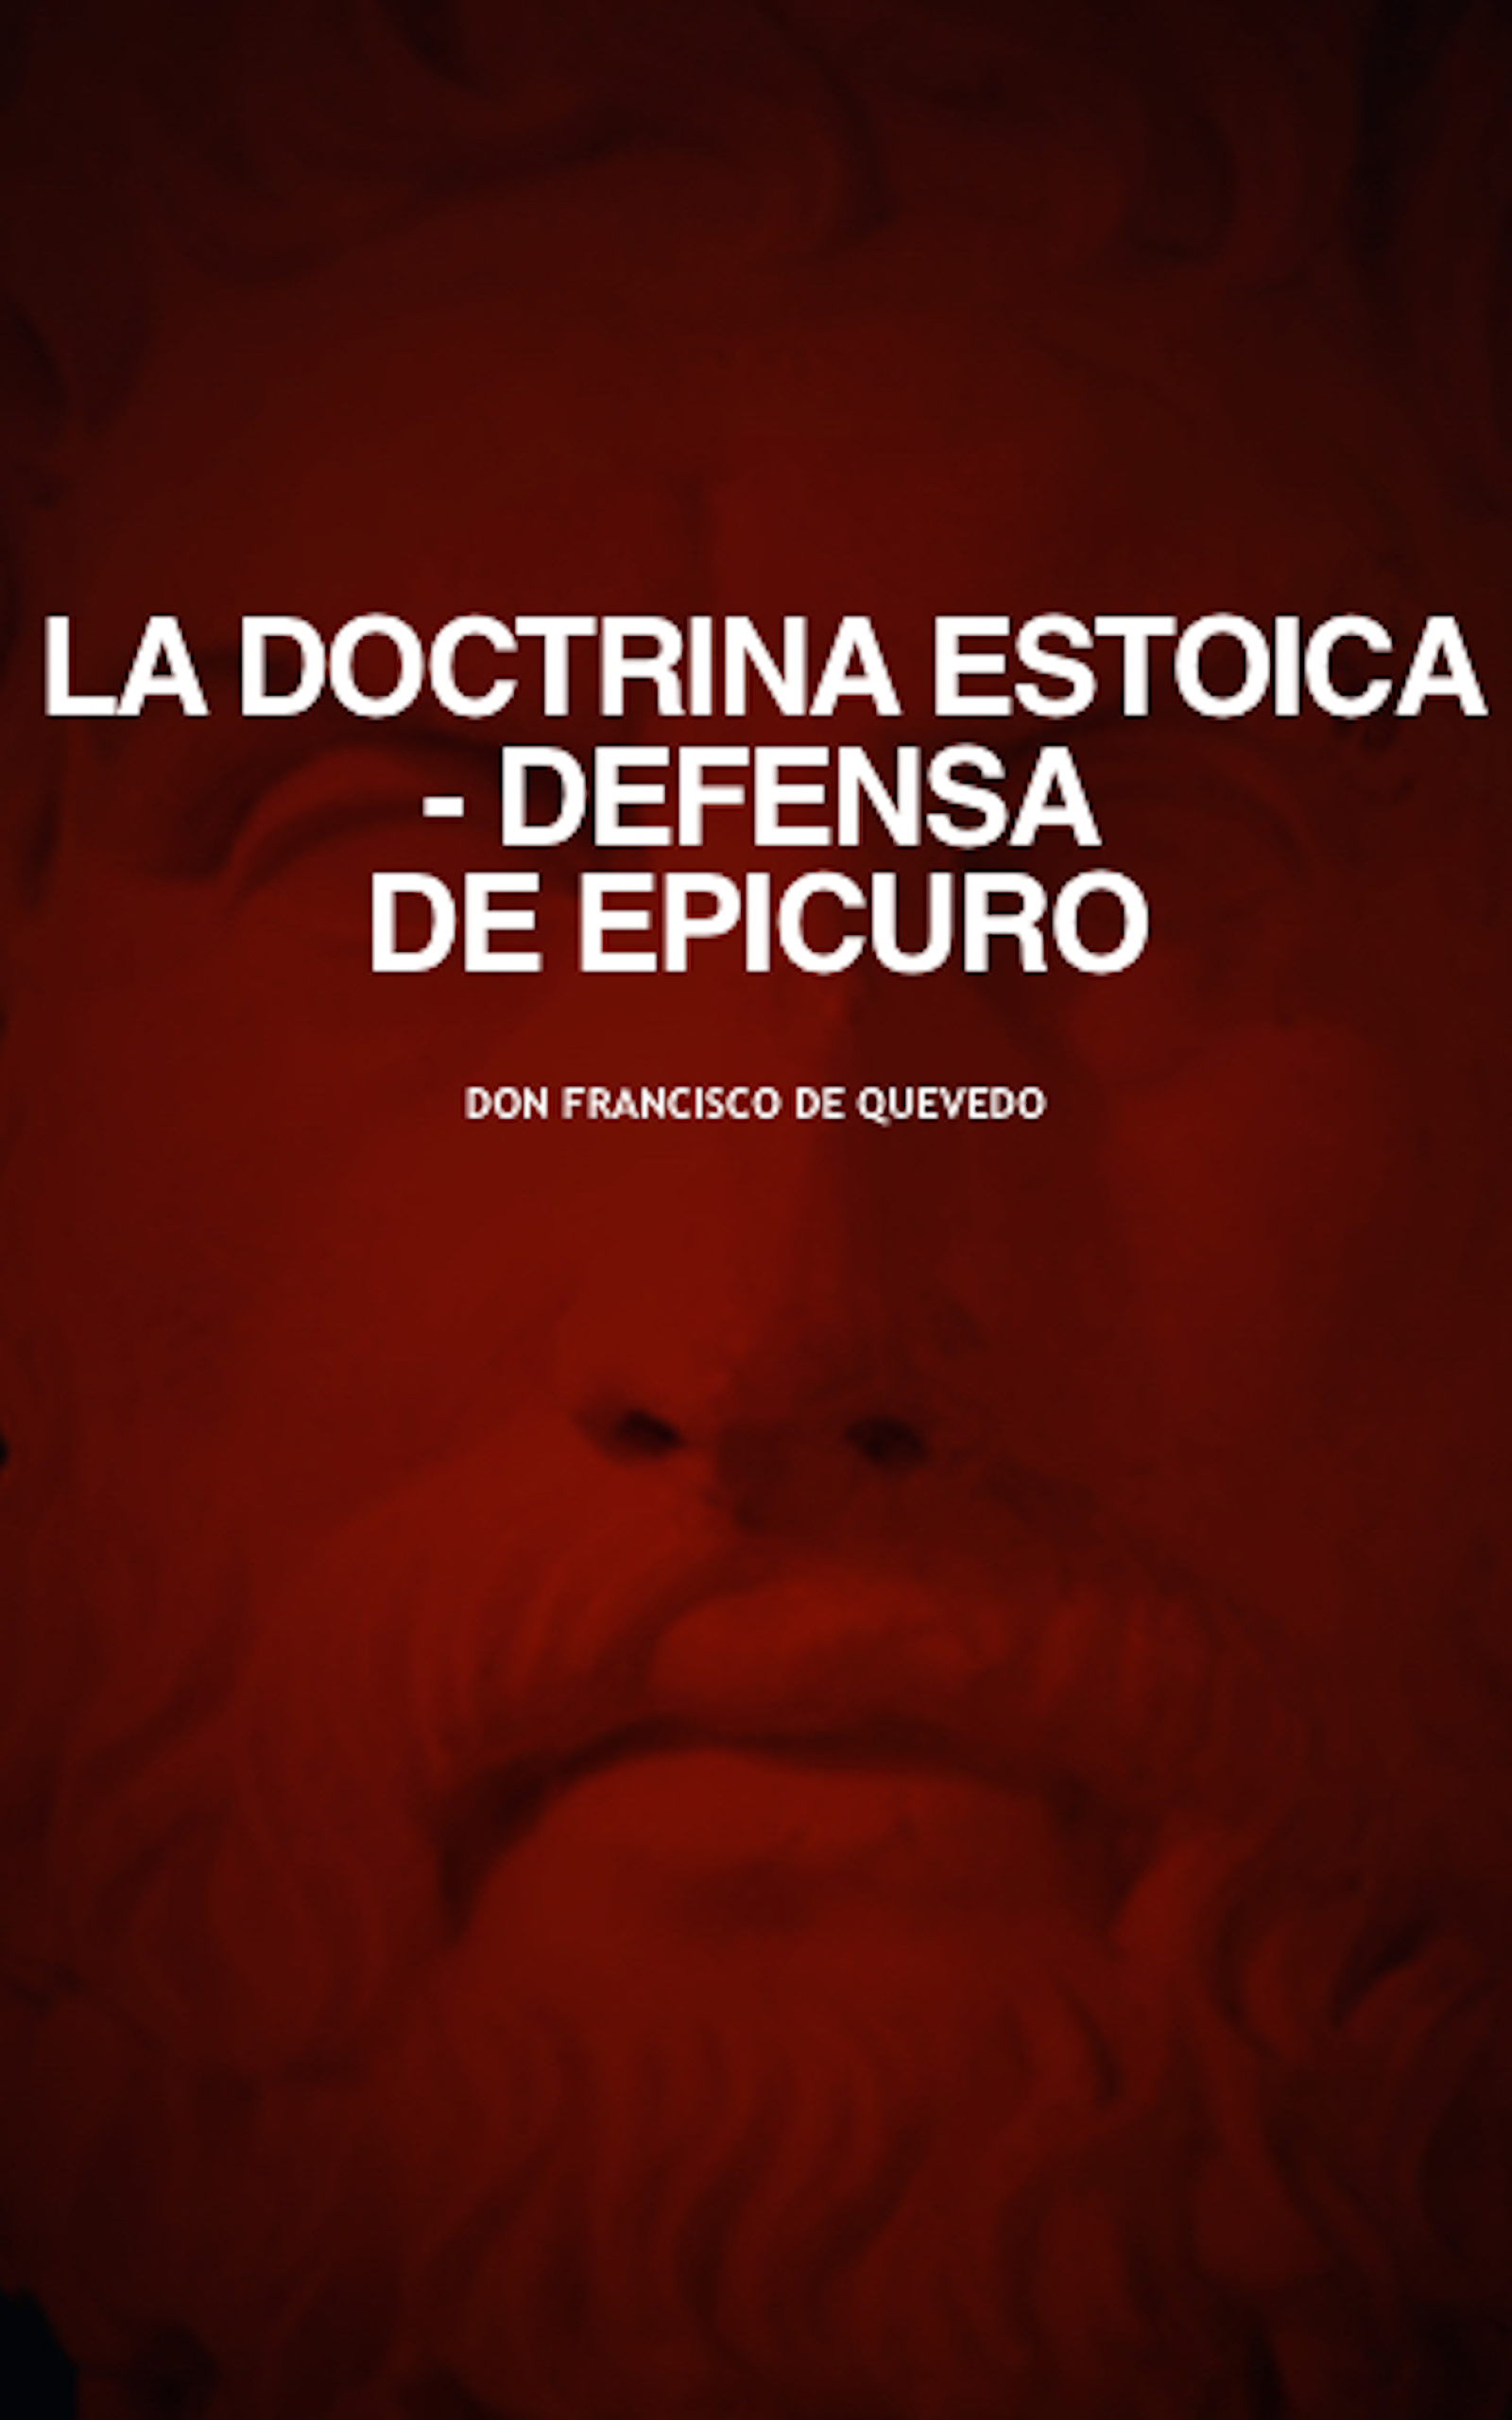 La Doctrina Estoica. Defensa de Epicuro